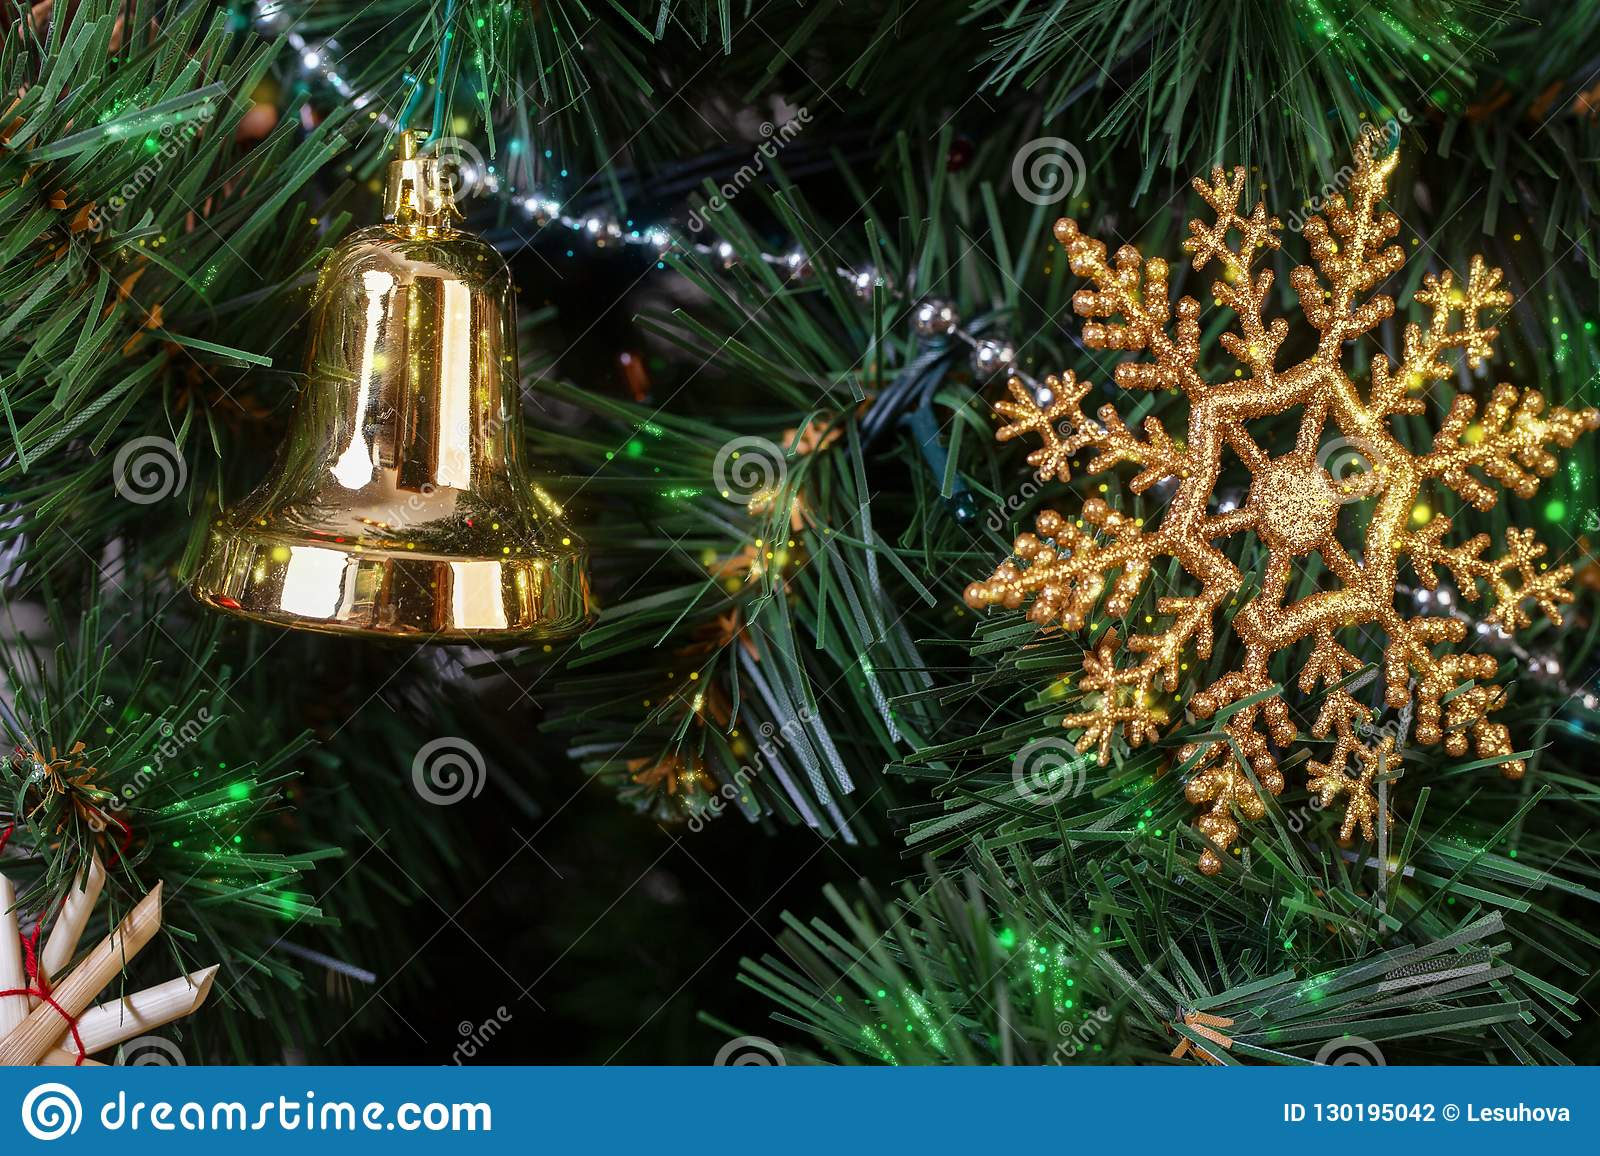 Vintage Artificial Christmas Trees.Decorations In The Scandinavian Style On An Artificial